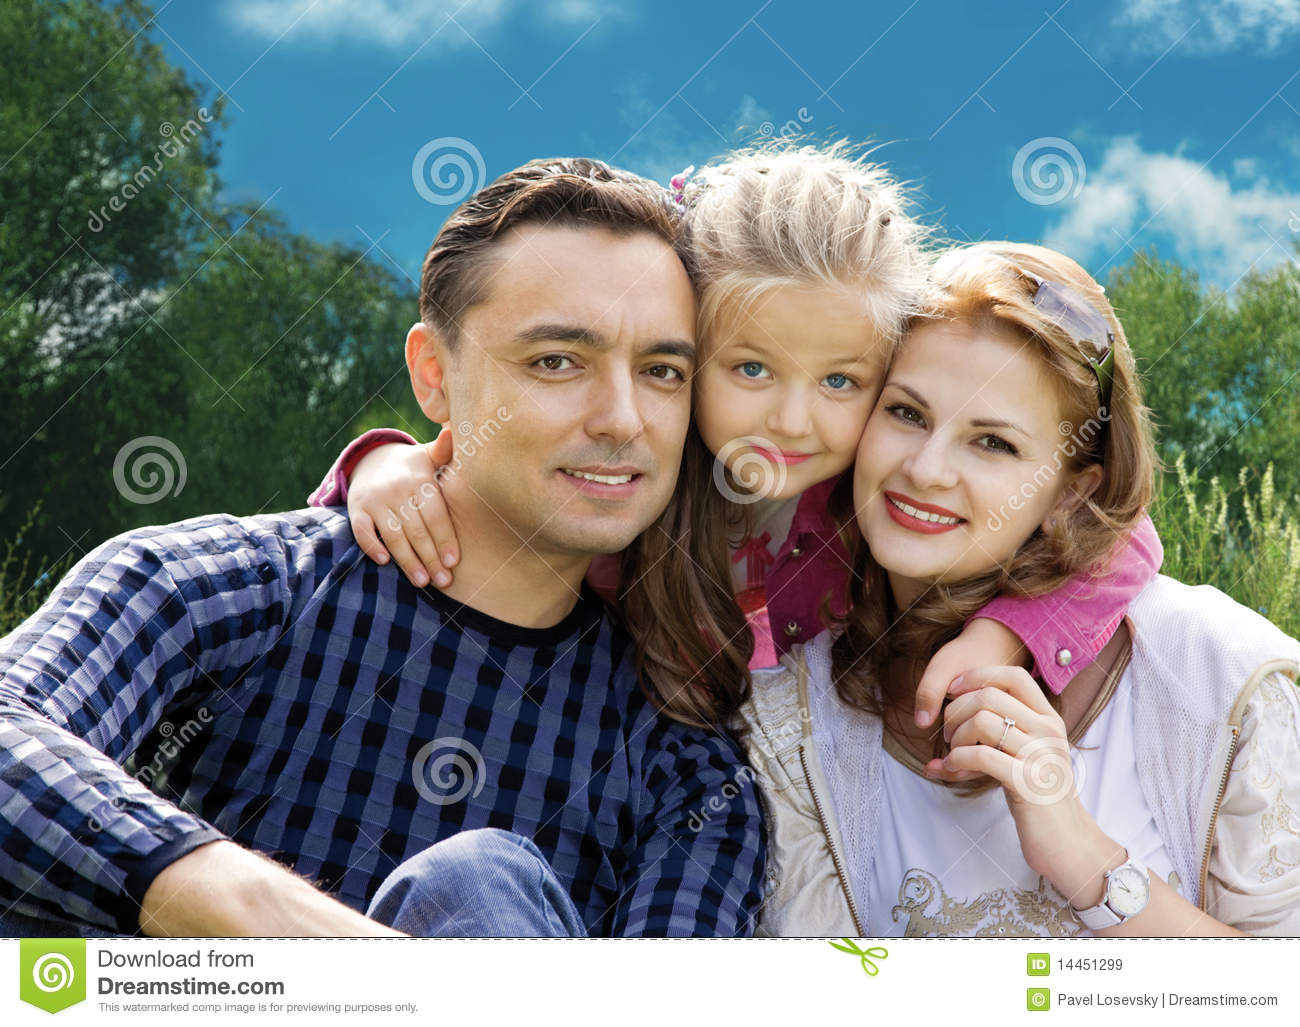 Download Faces Family With Little Girl In Park Collage Stock Image - Image of couple, adult: 14451299